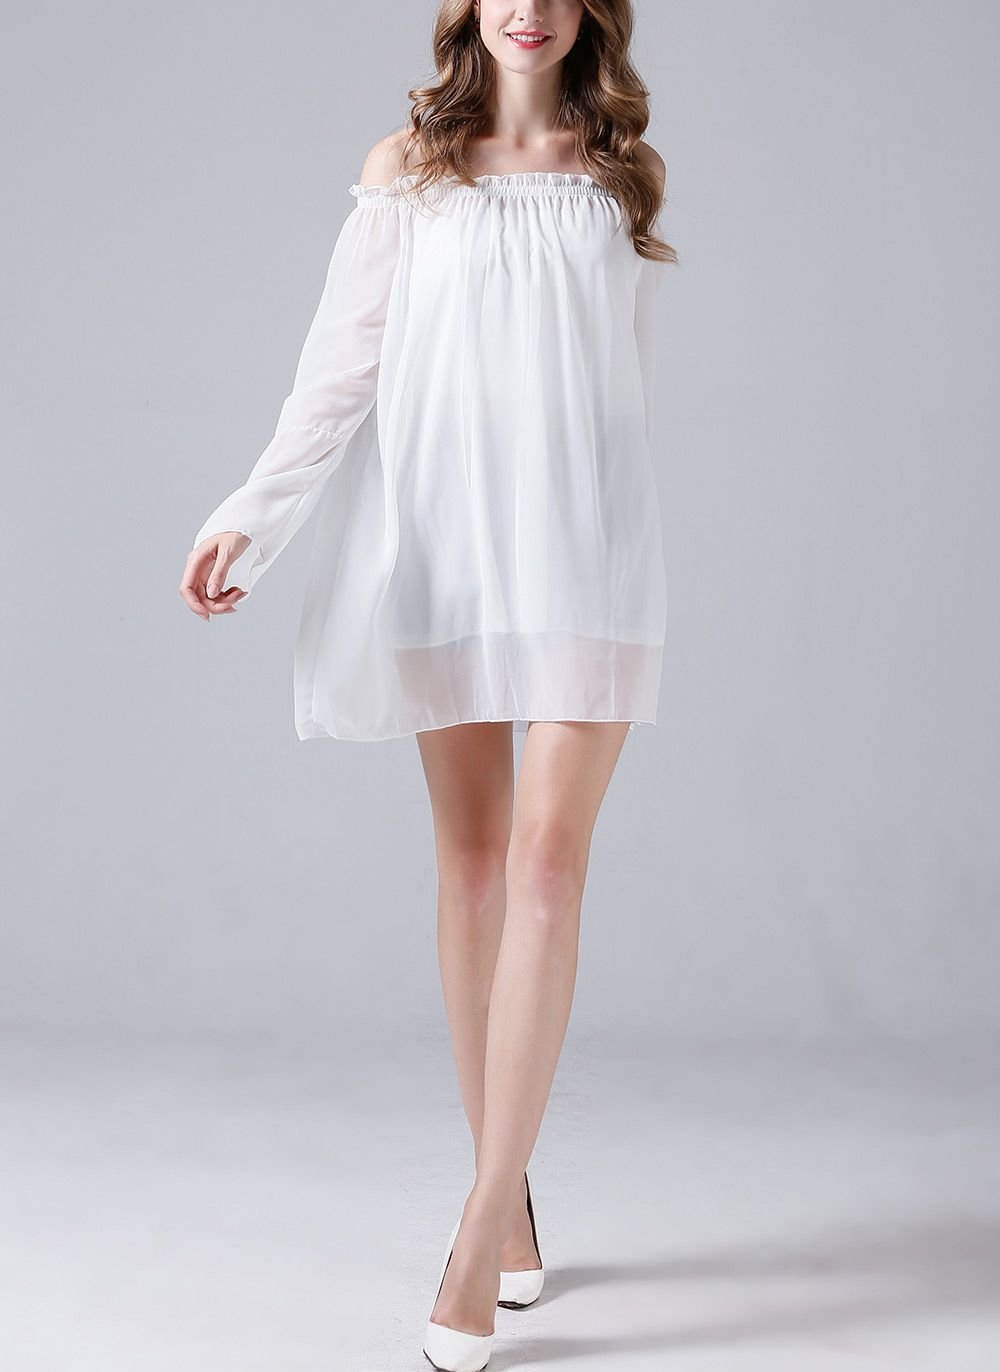 Chiffon Cocktail Dress or Tunic Top